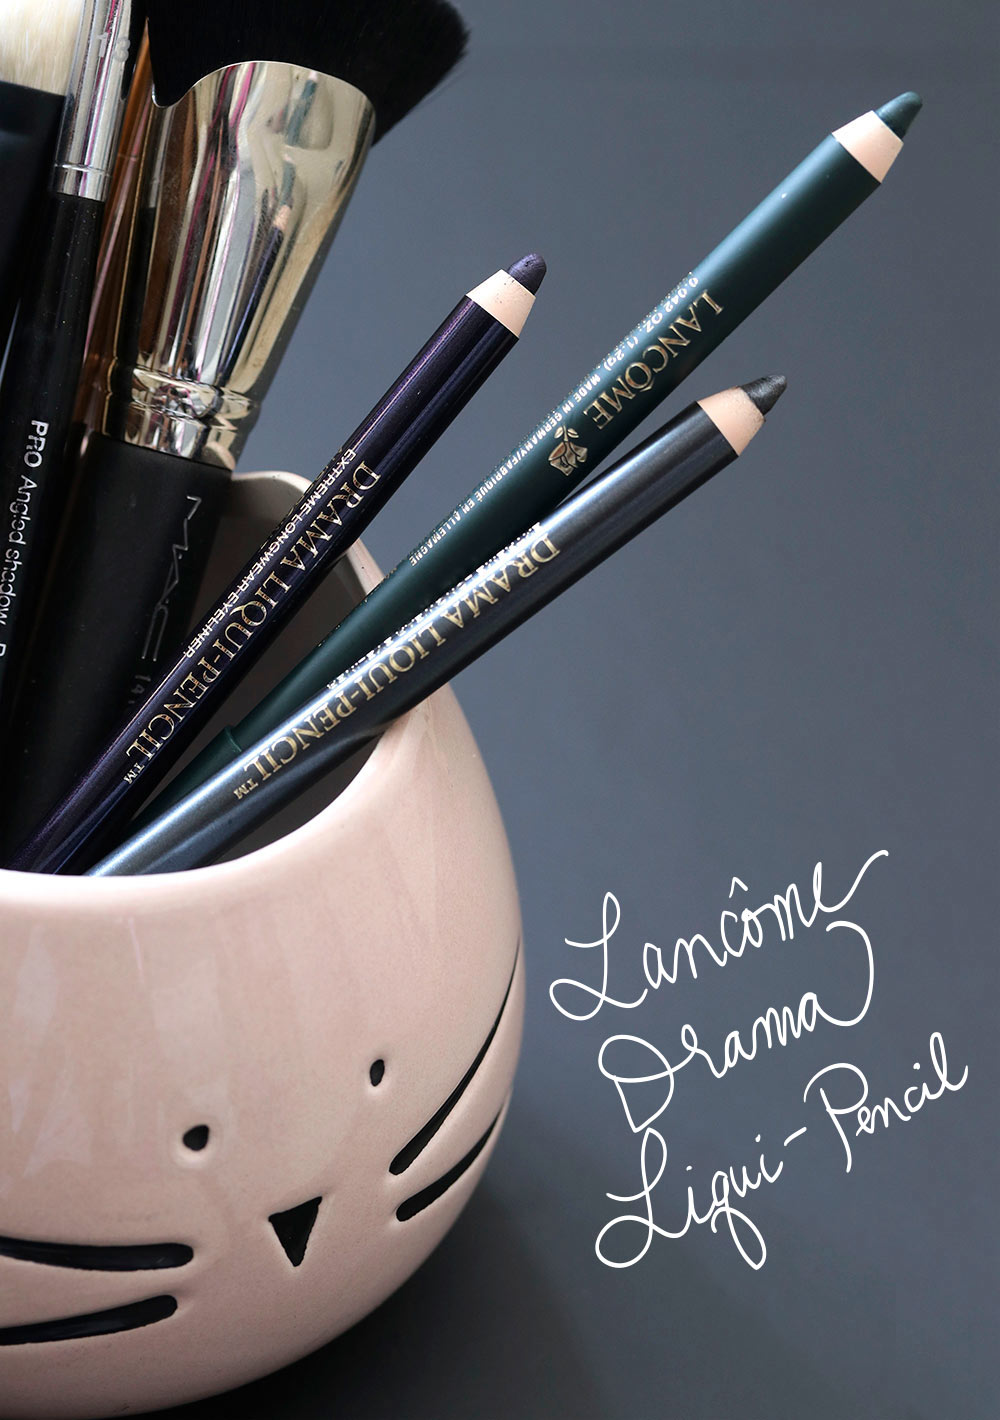 lancome drama liqui pencil review